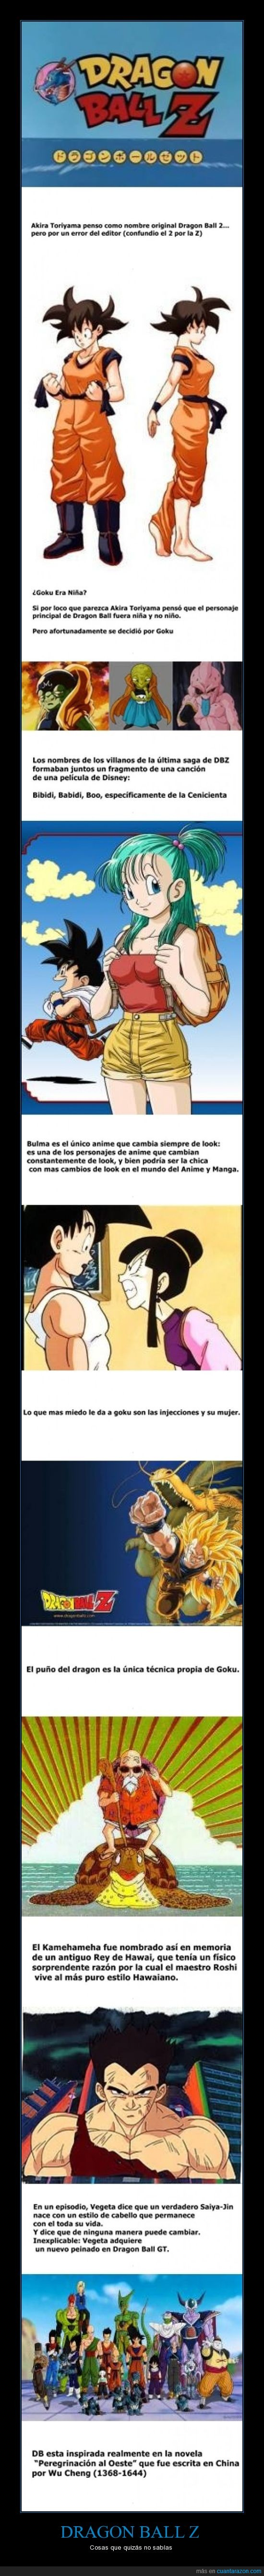 bola dragon,curiosidad,dragon ball,goku